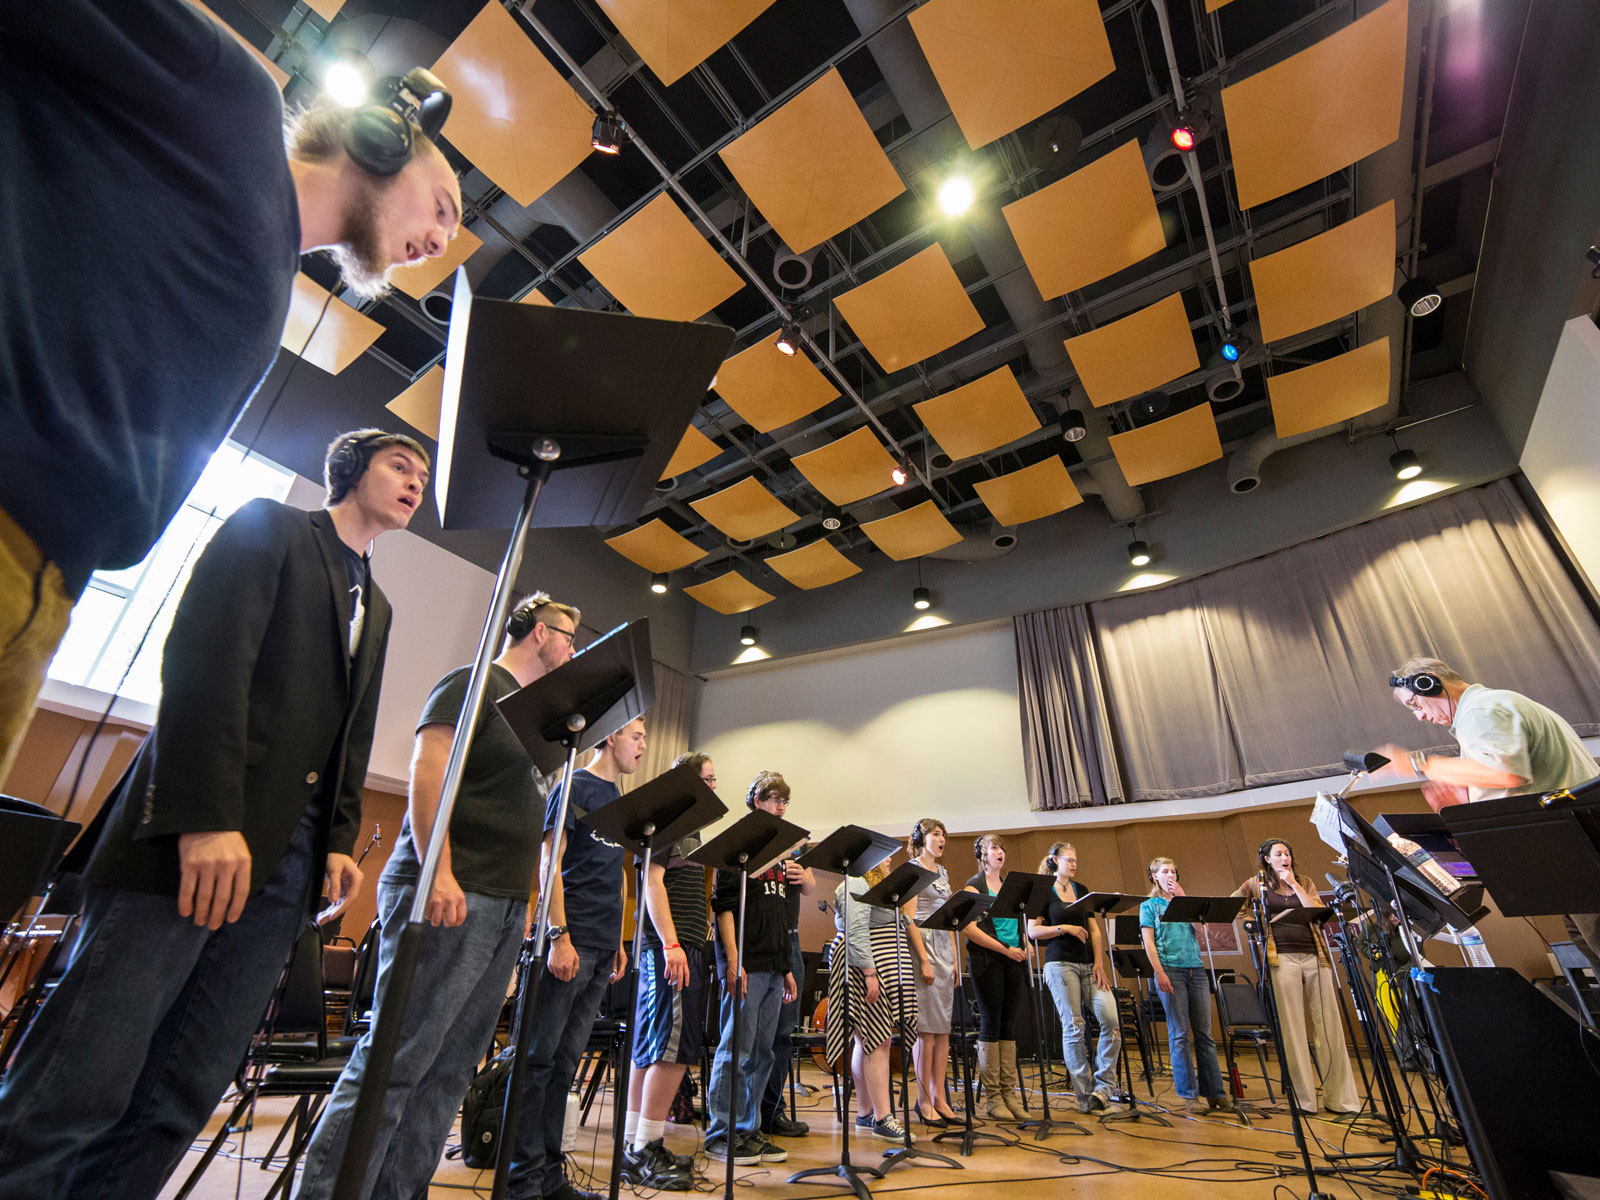 Singers in the recording hall with instructor and several music stands at the Niemery Center